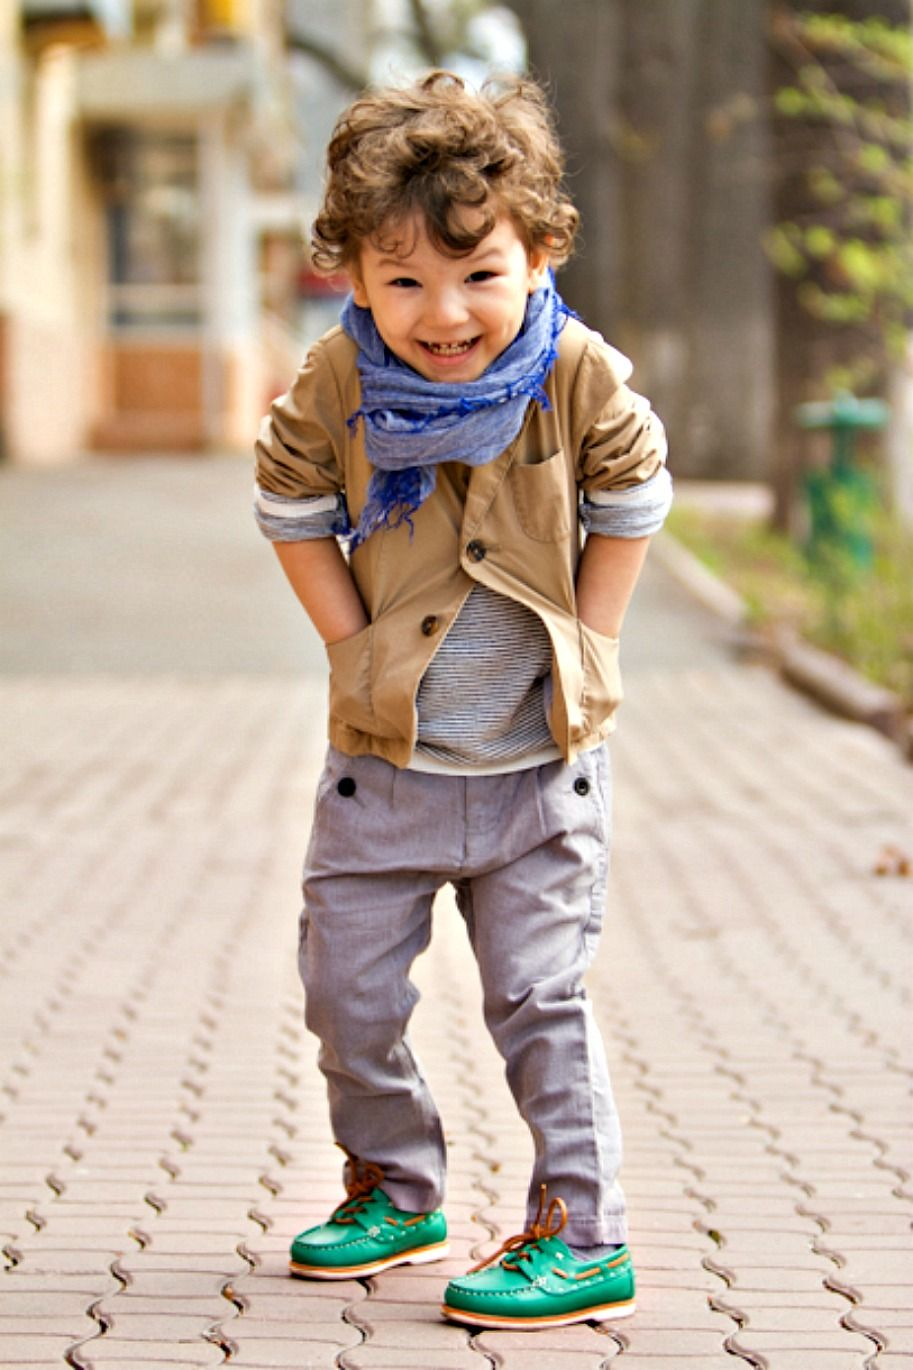 Boys Little fashion pictures pictures